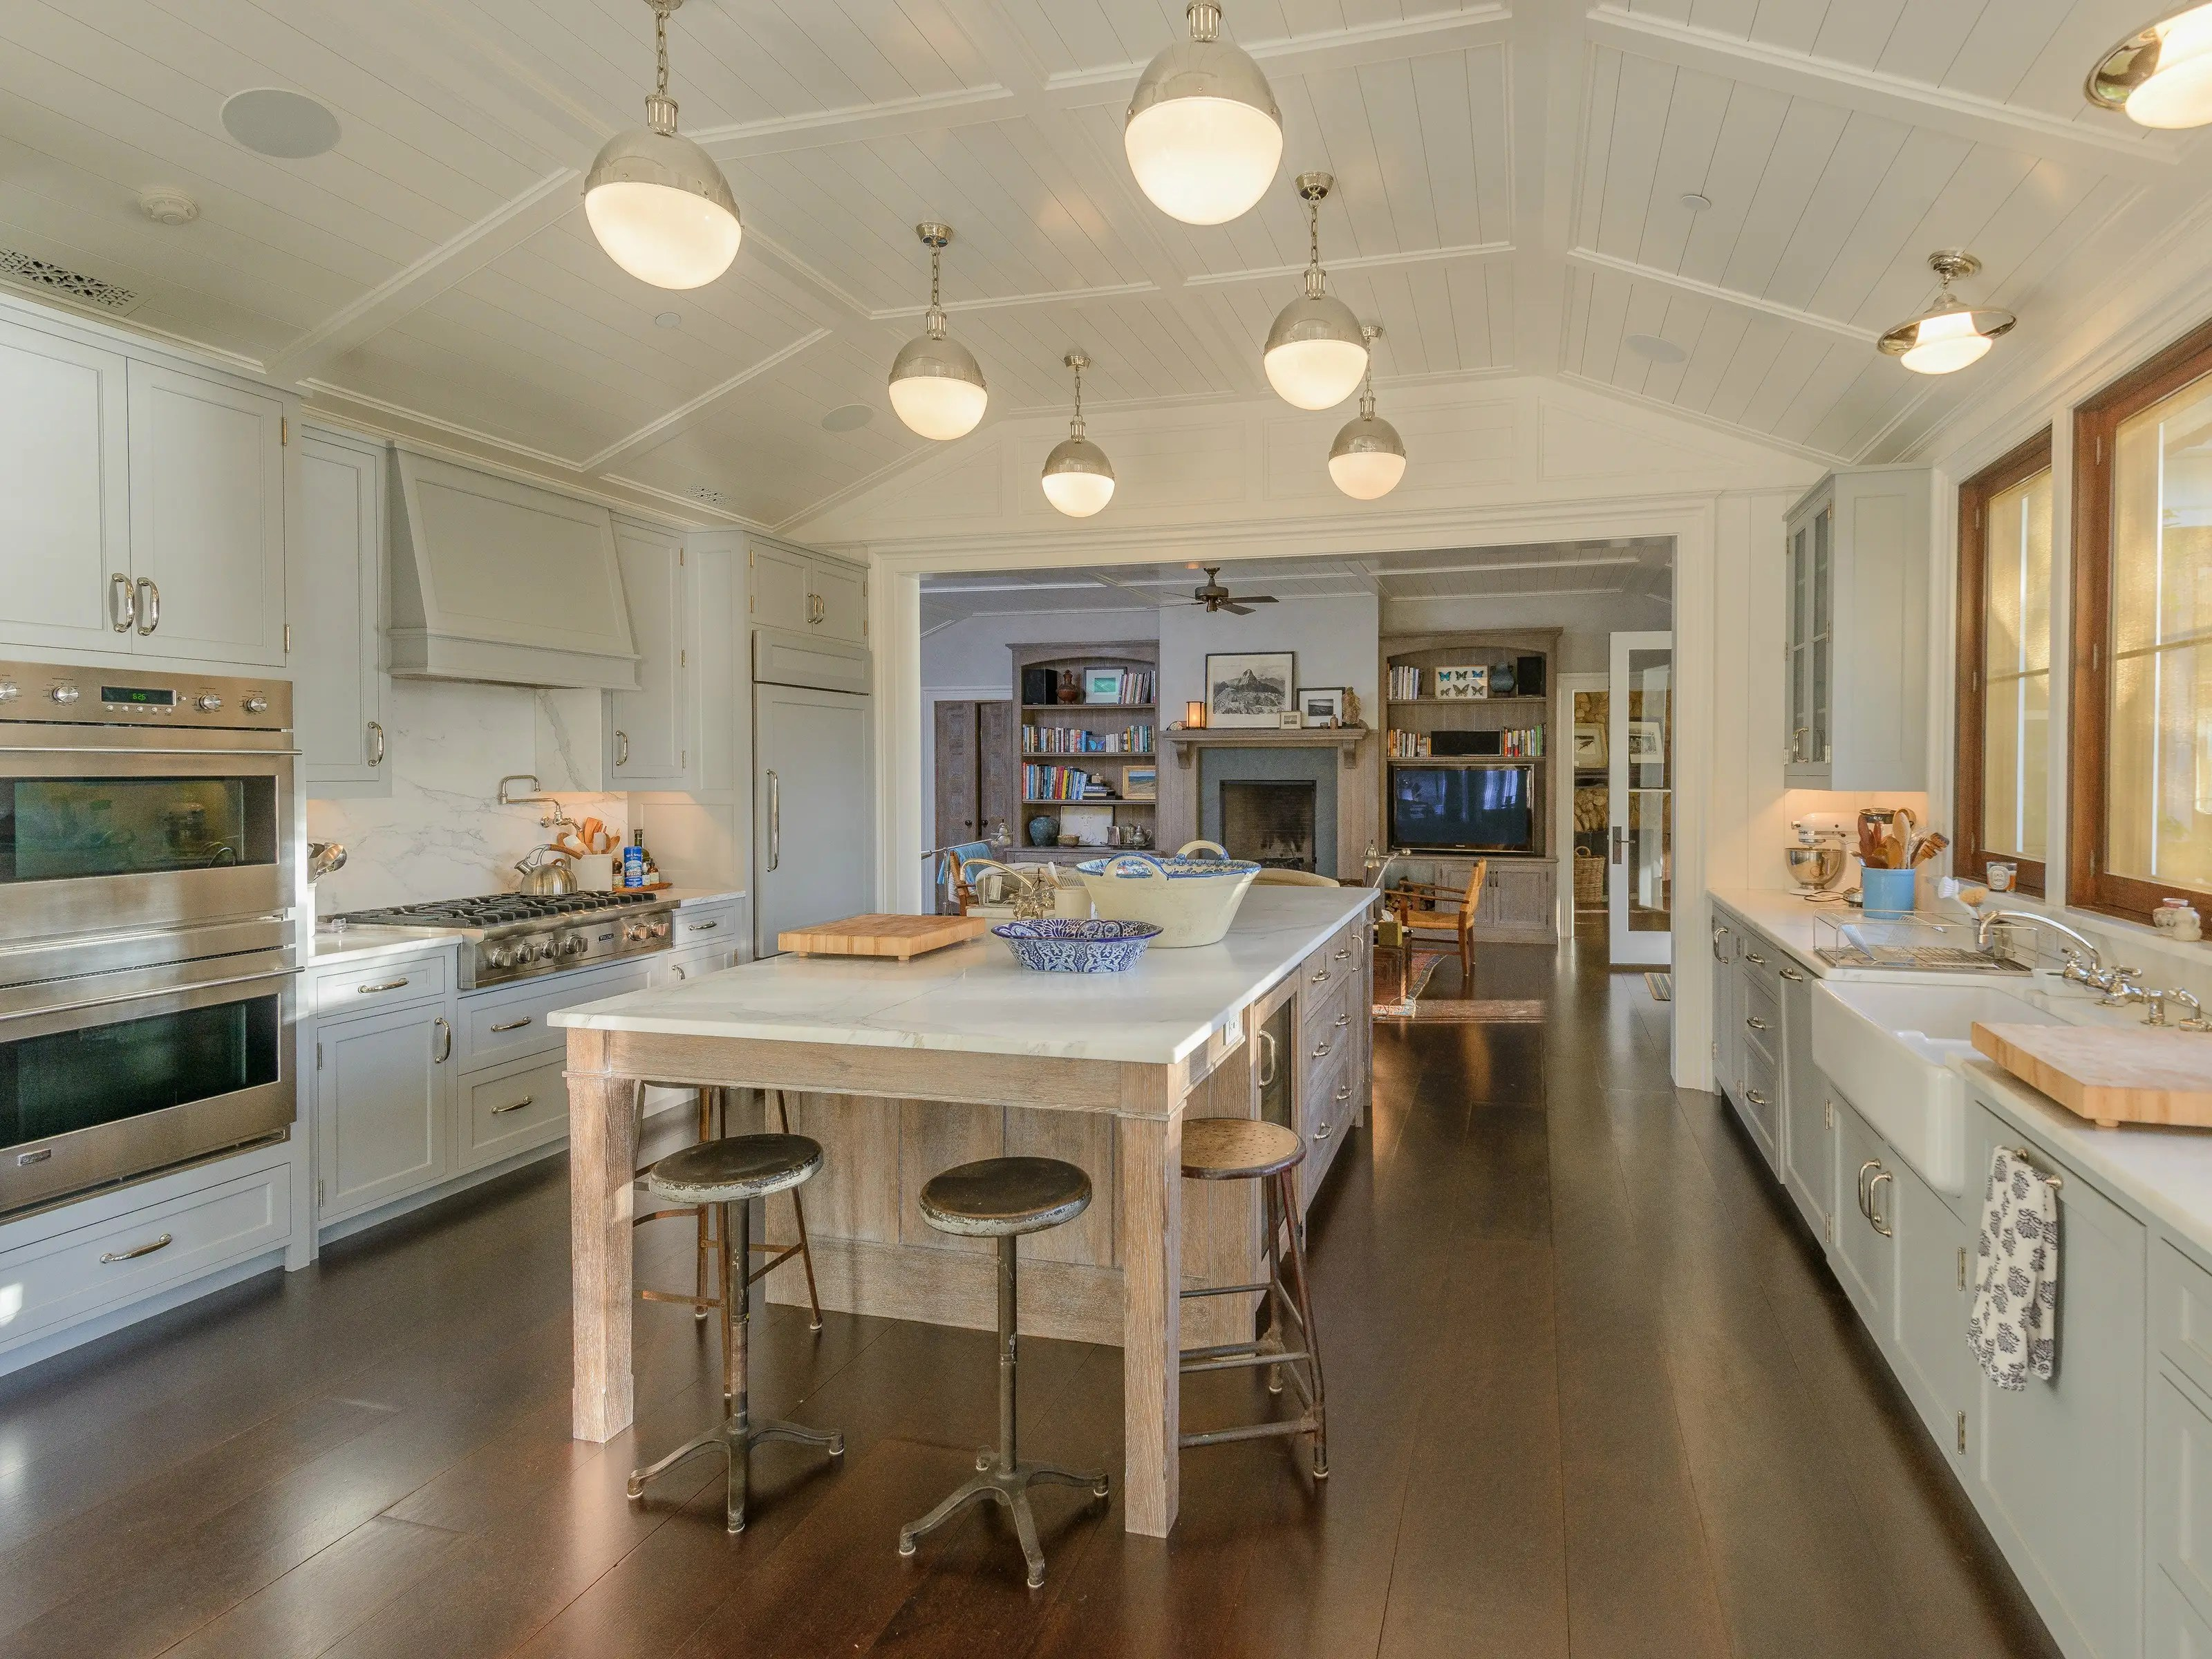 Not to mention a gorgeous kitchen with central island and high-tech kitchen appliances.